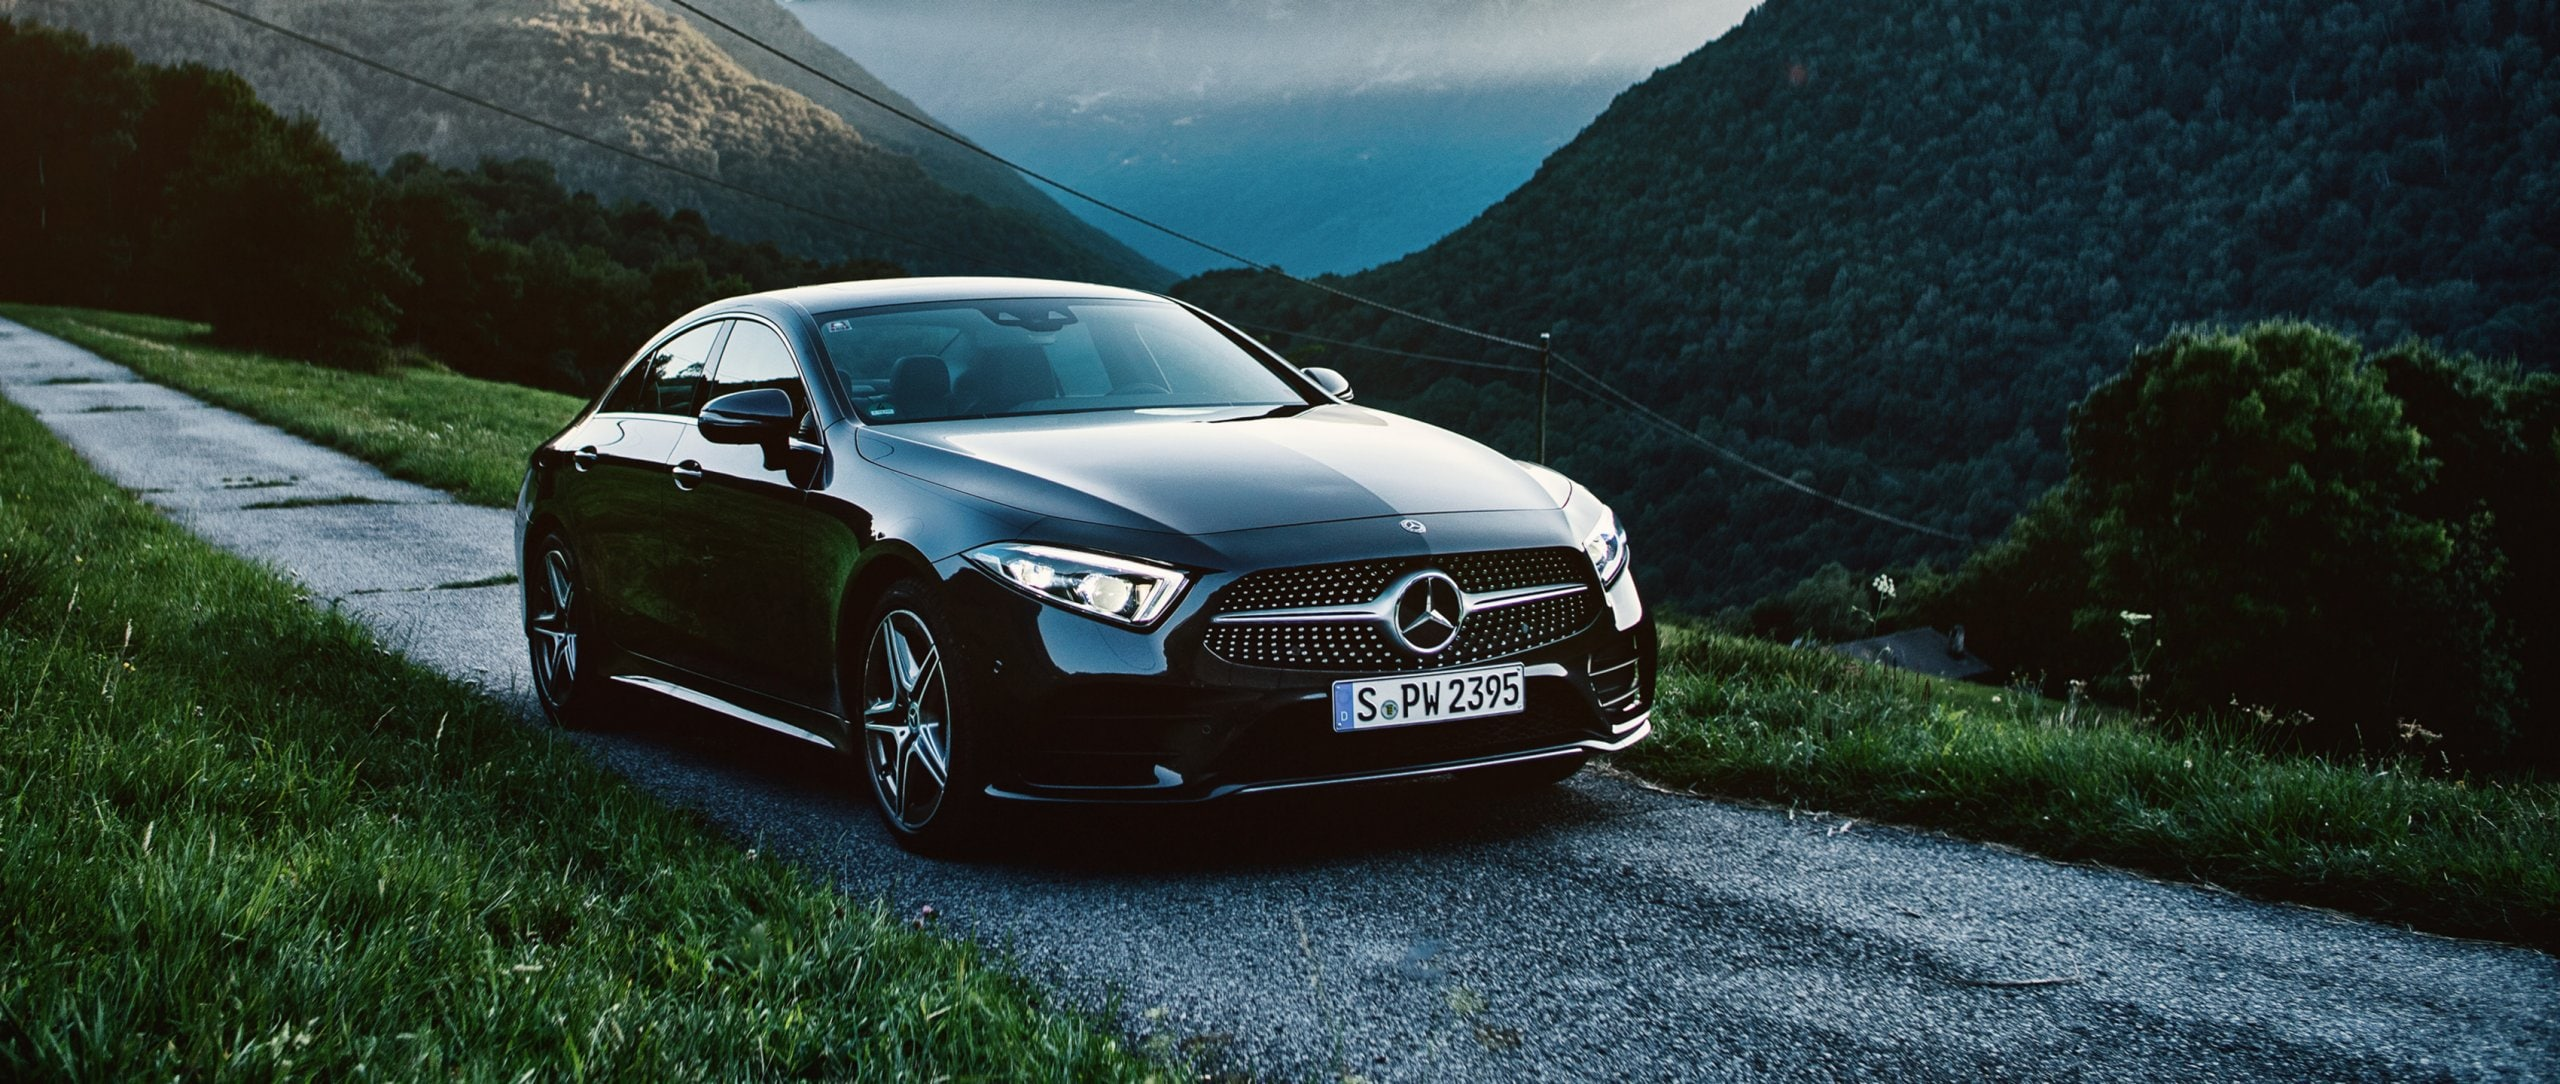 The Mercedes-Benz CLS 400 d 4MATIC on a road in the mountains.